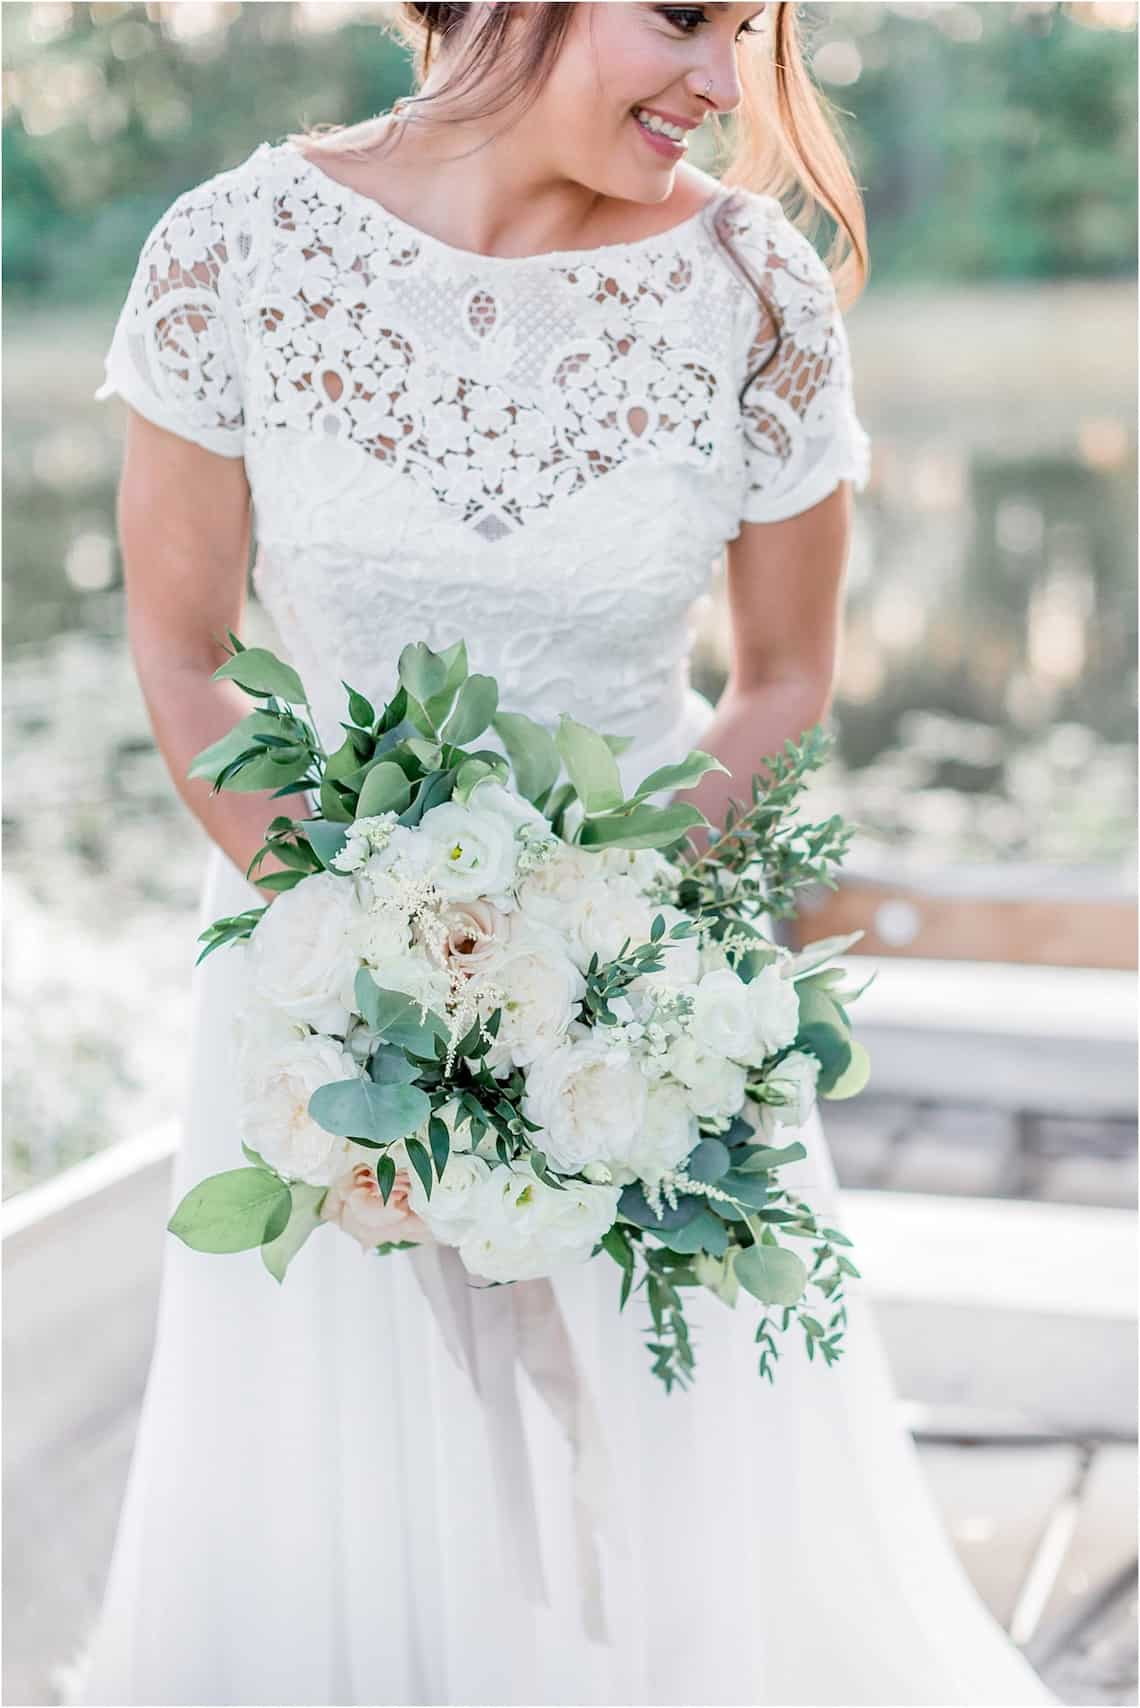 Smiling Bride Standing in Boat on the Lake with White Flowers and Greenery Bouquet